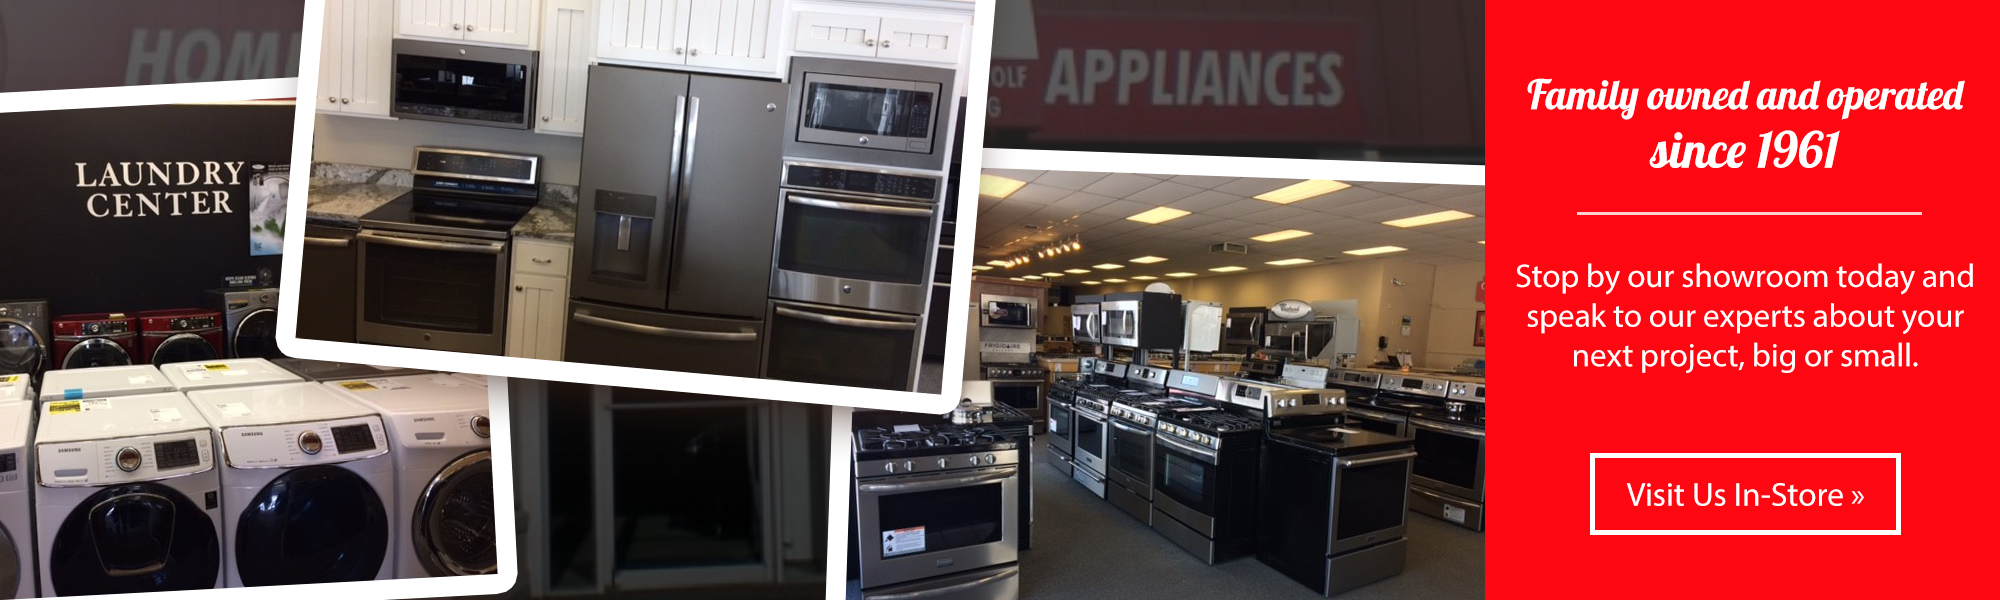 Dennings Appliance – Home and Kitchen Appliances - Idaho Falls, ID